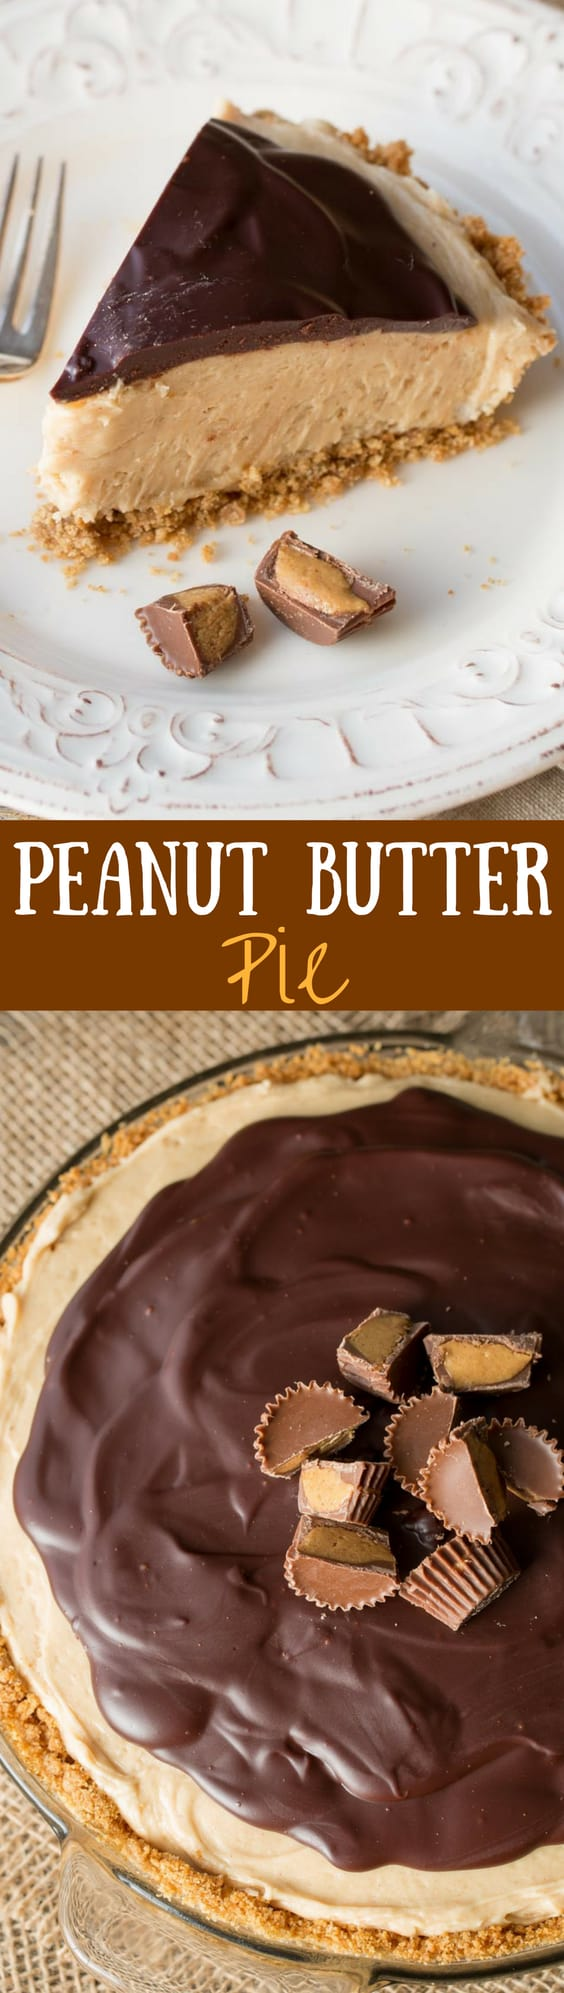 Peanut Butter Pie - A rich and creamy peanut butter pie filling topped with smooth chocolate ganache. www.savingdessert.com